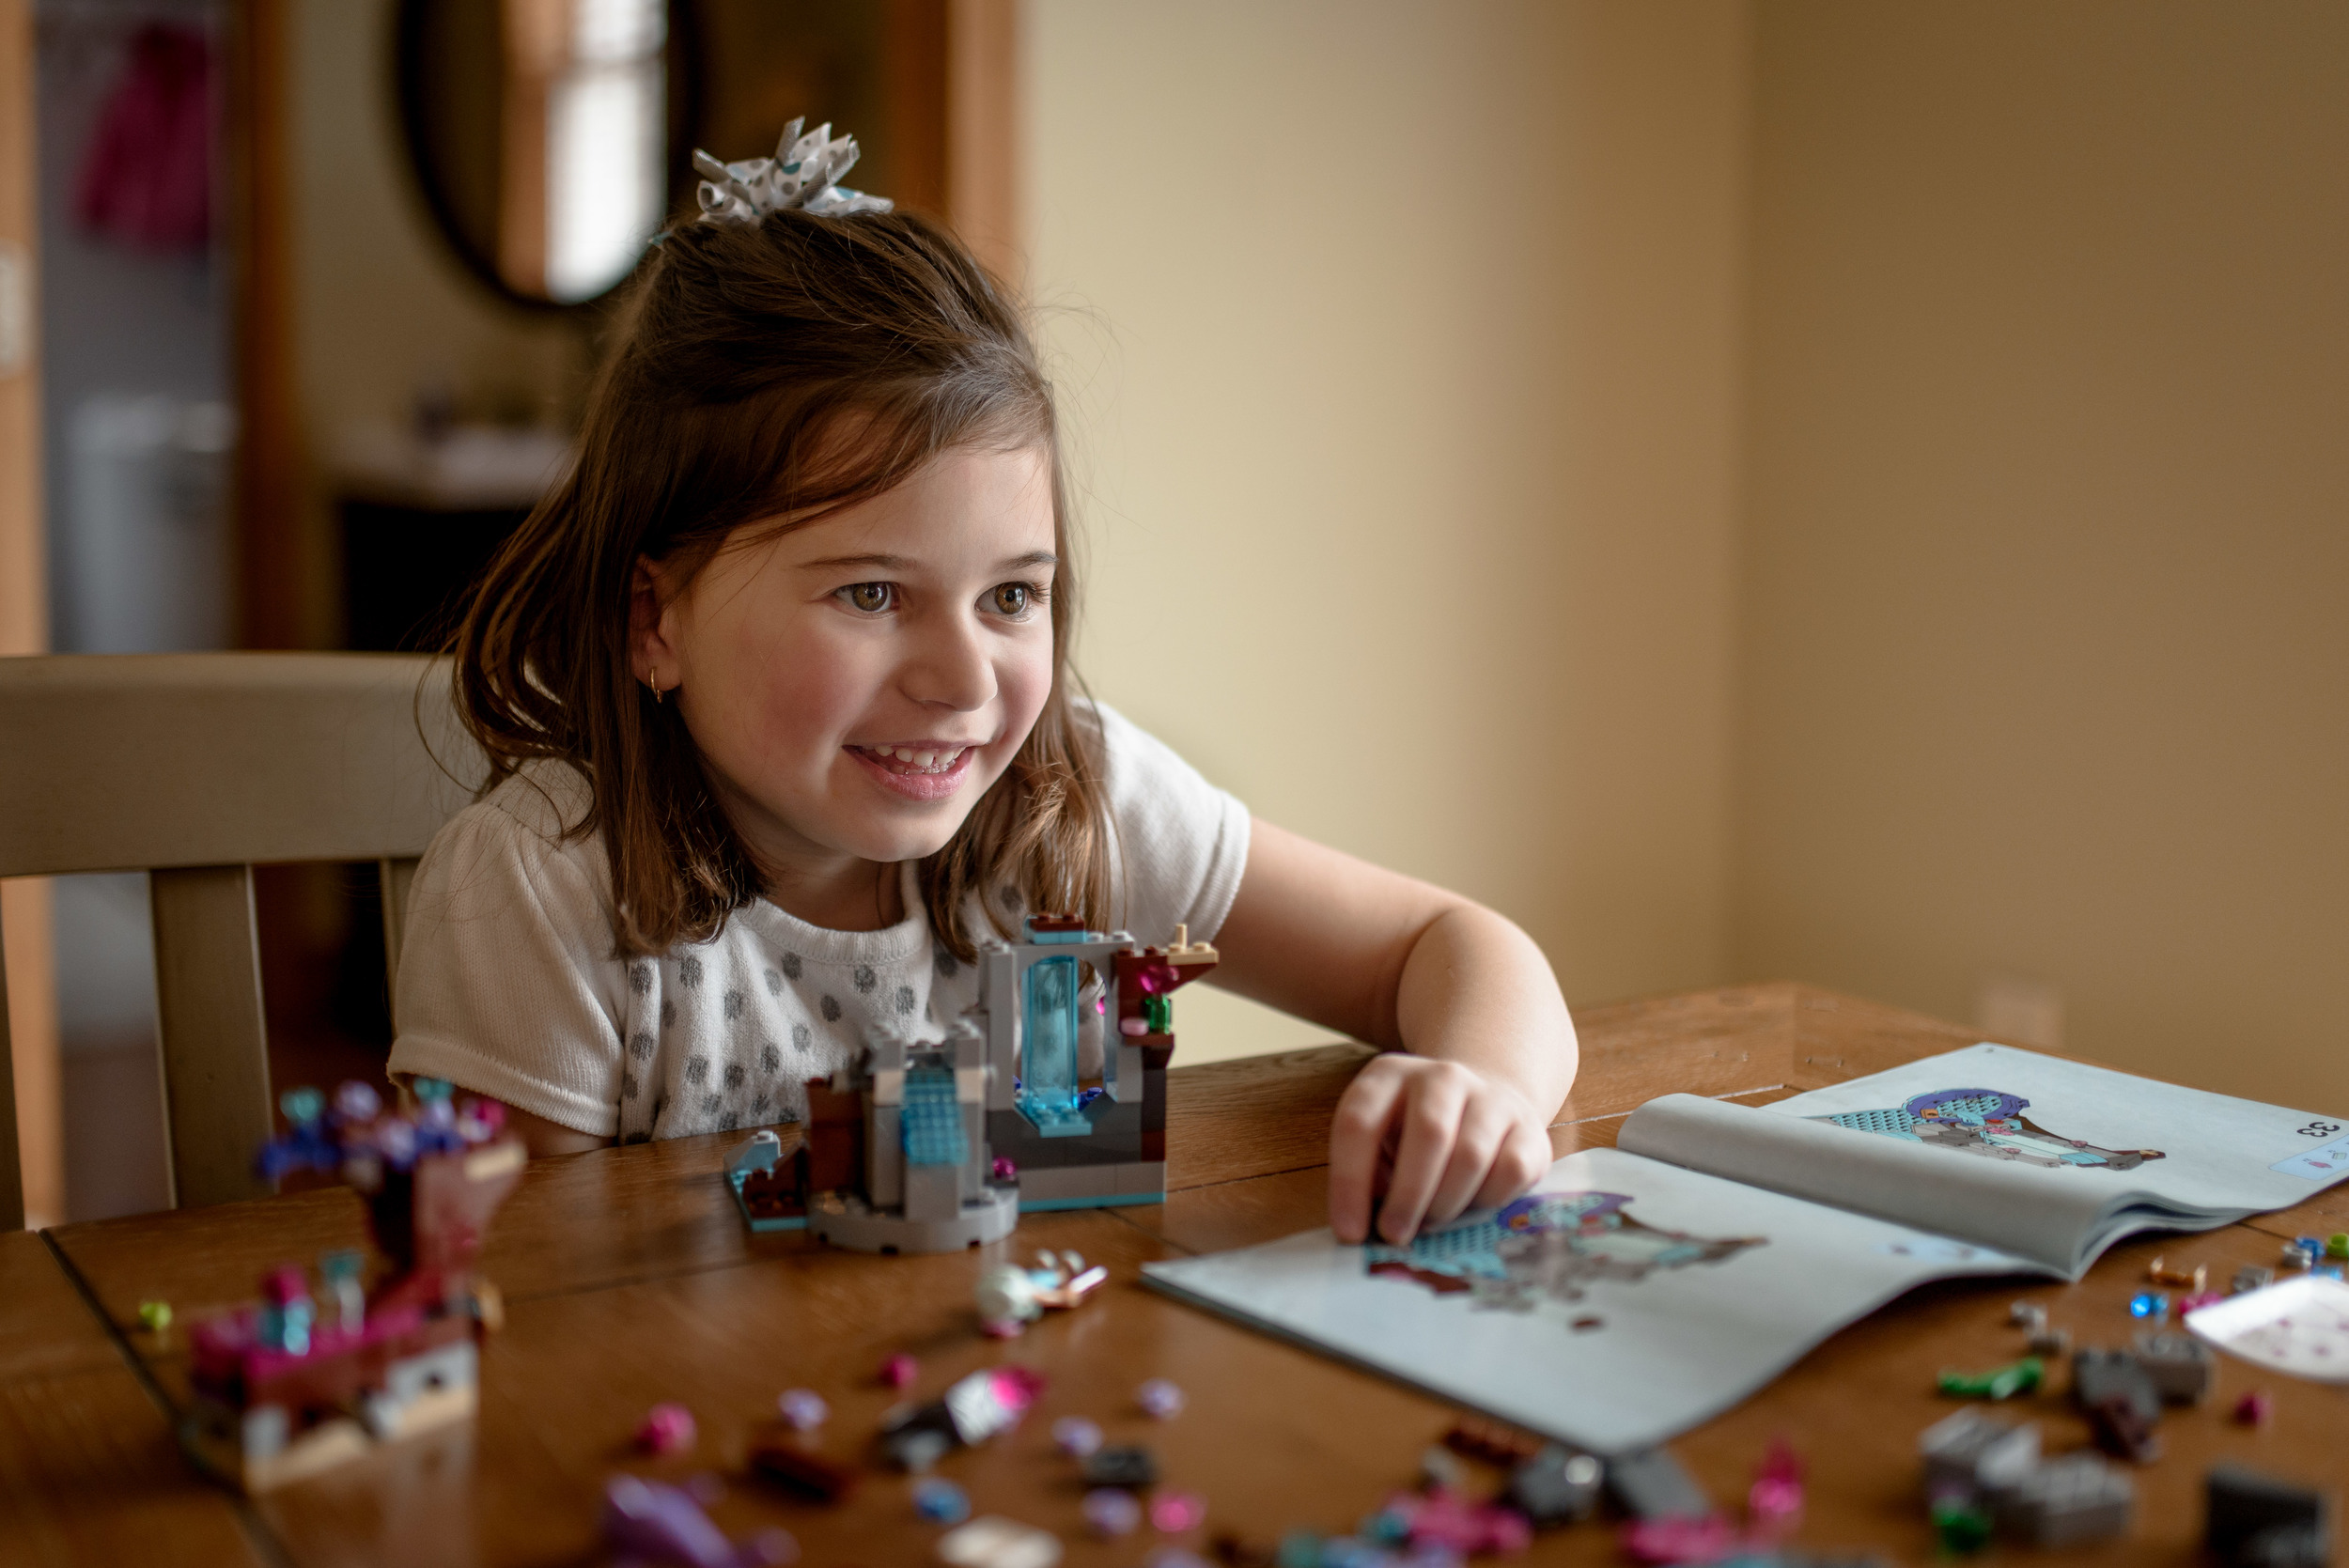 Daughter Happily Playing With Legos